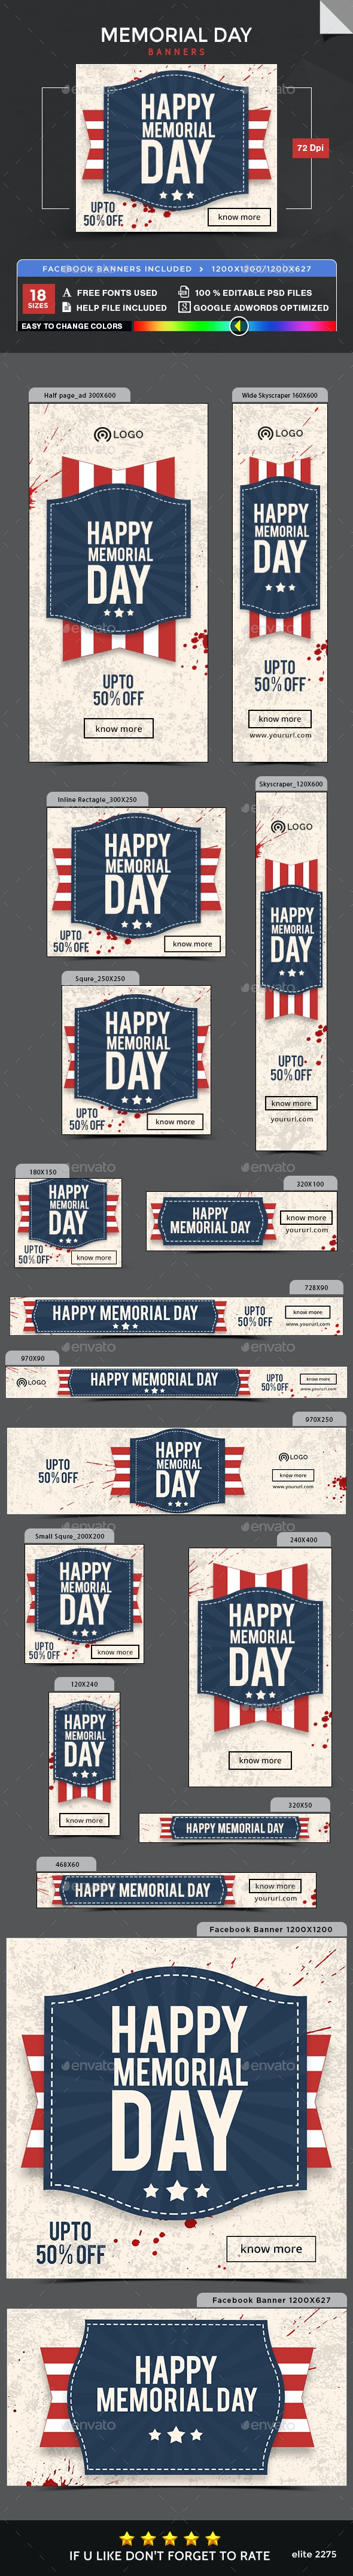 Memorial Day Banners - Images Included - Banners & Ads Web Elements